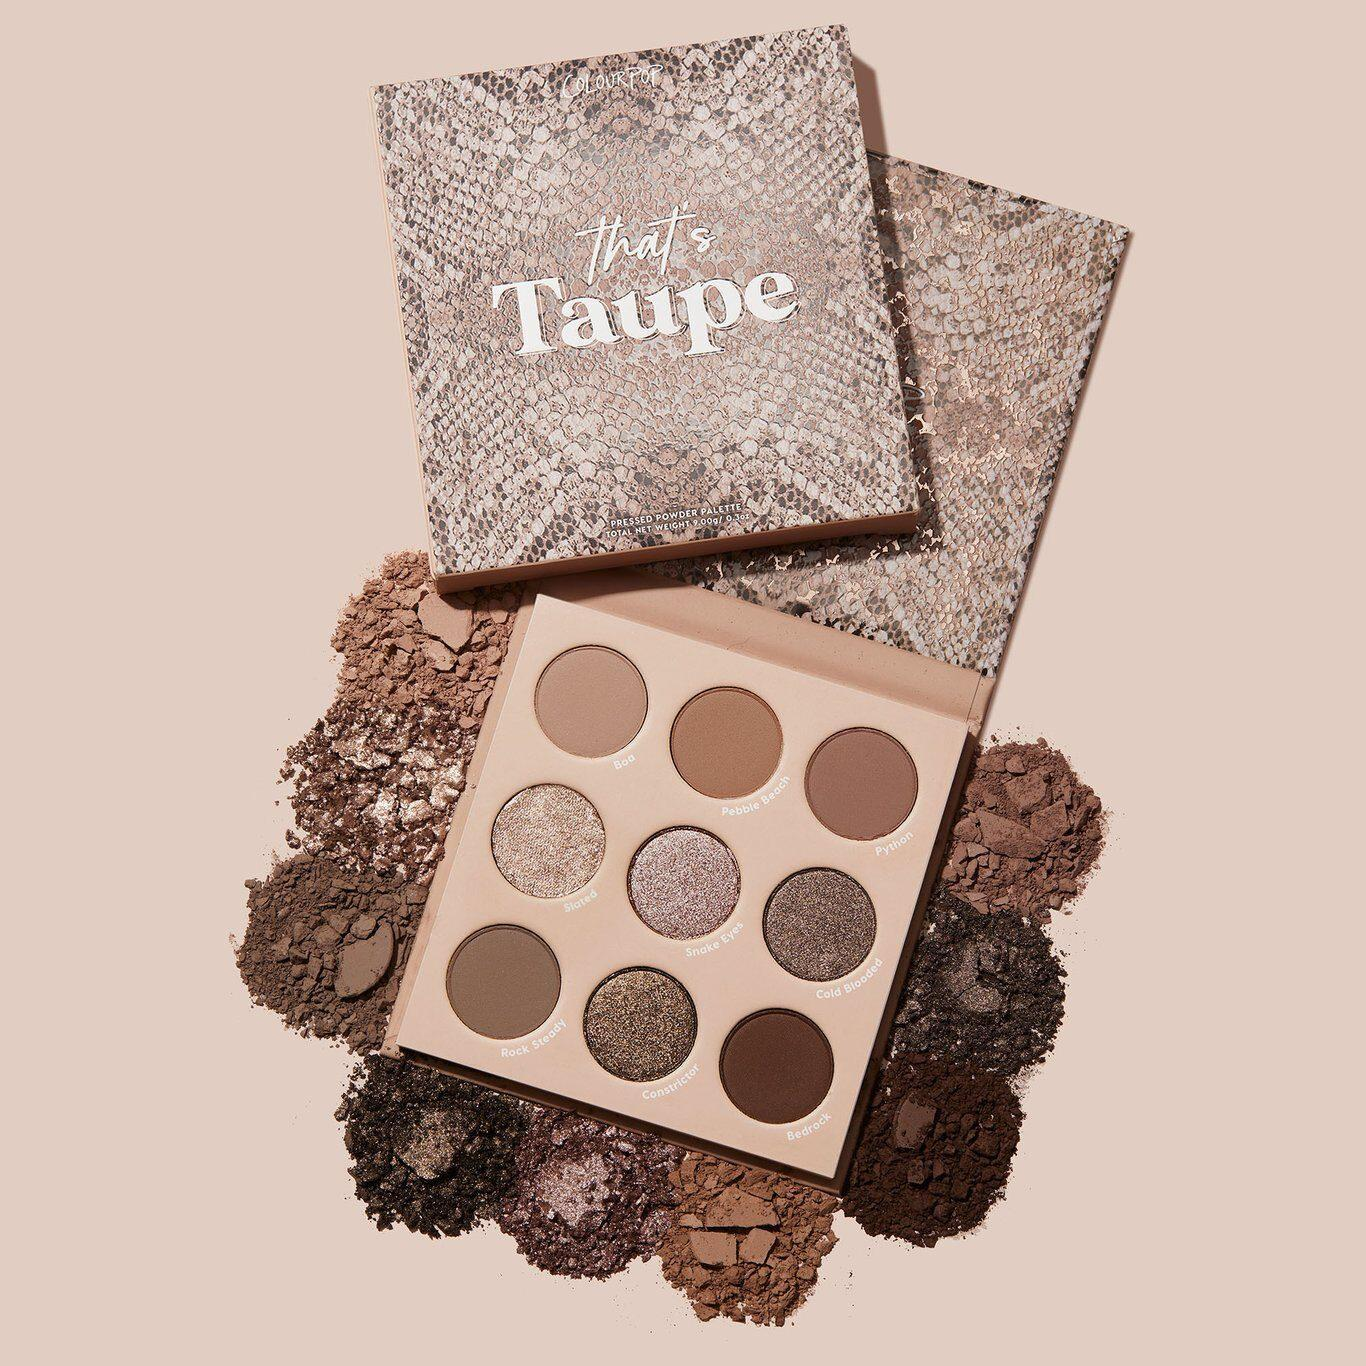 Colourpop That's Taupe Collection That's Taupe Eyshadow Palette With Crashes